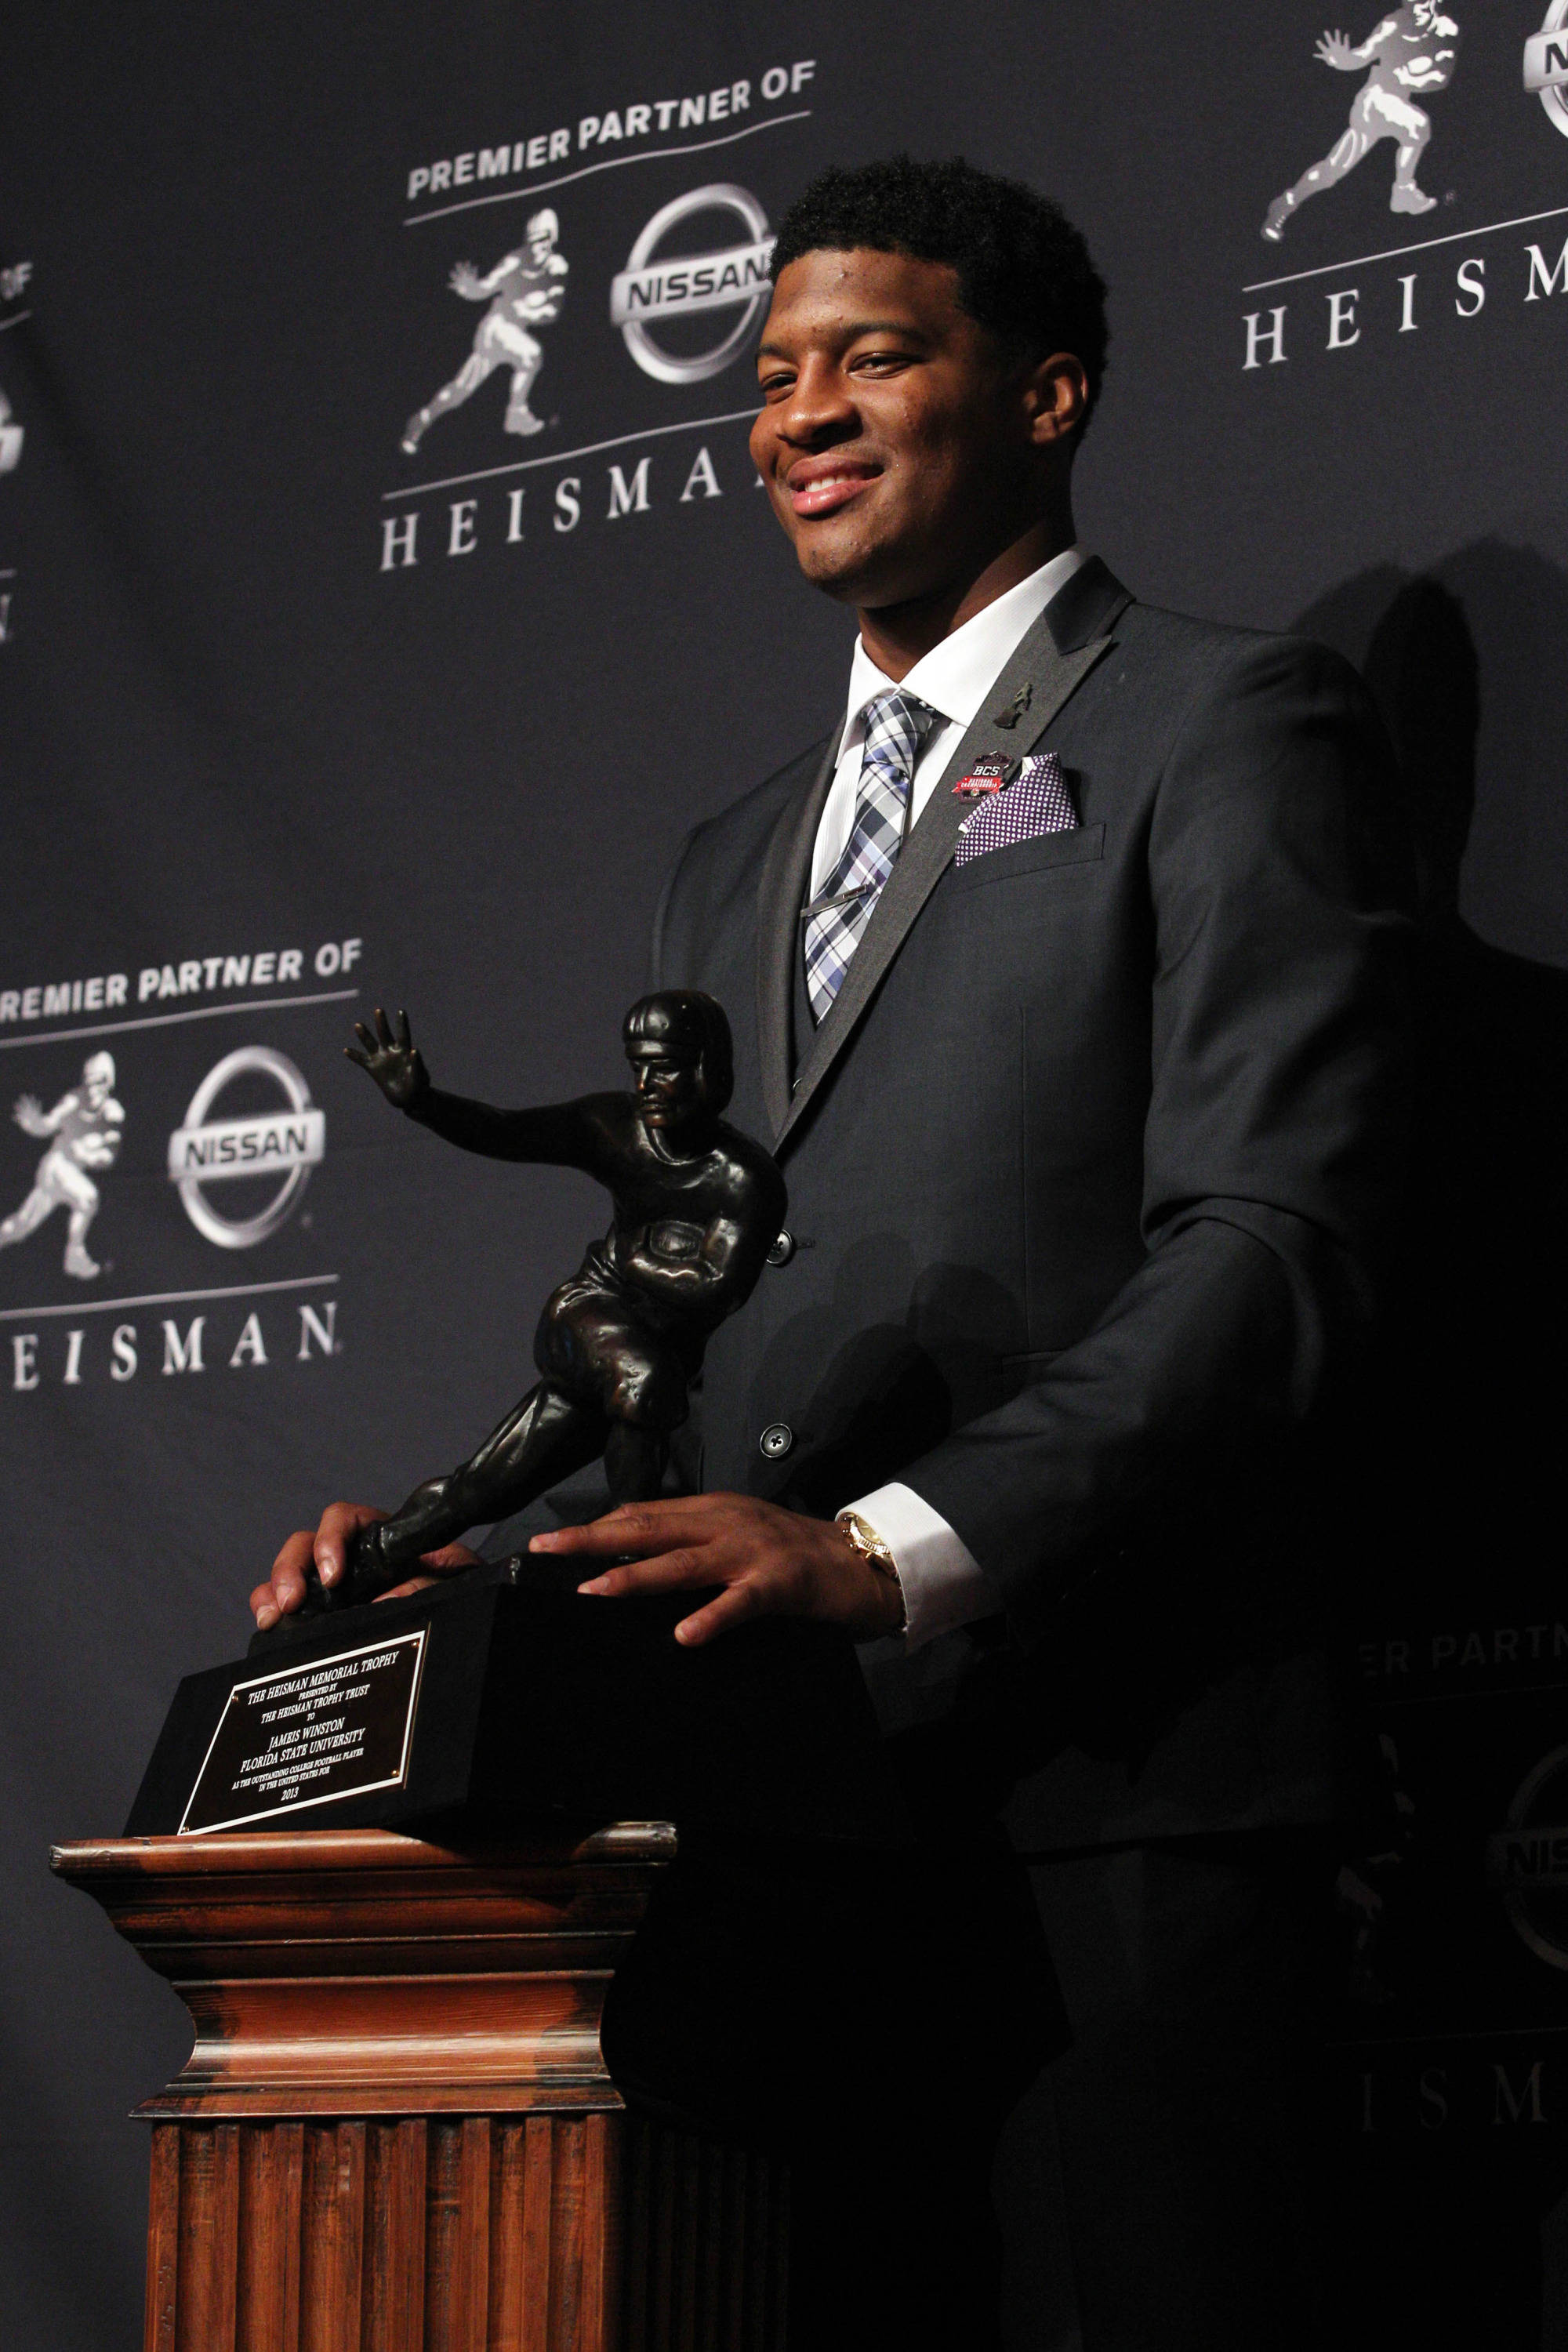 Dec 14, 2013; New York, NY, USA; Seminoles quarterback Jameis Winston poses for a photo after being awarded the 2013 Heisman Trophy. Adam Hunger-USA TODAY Sports